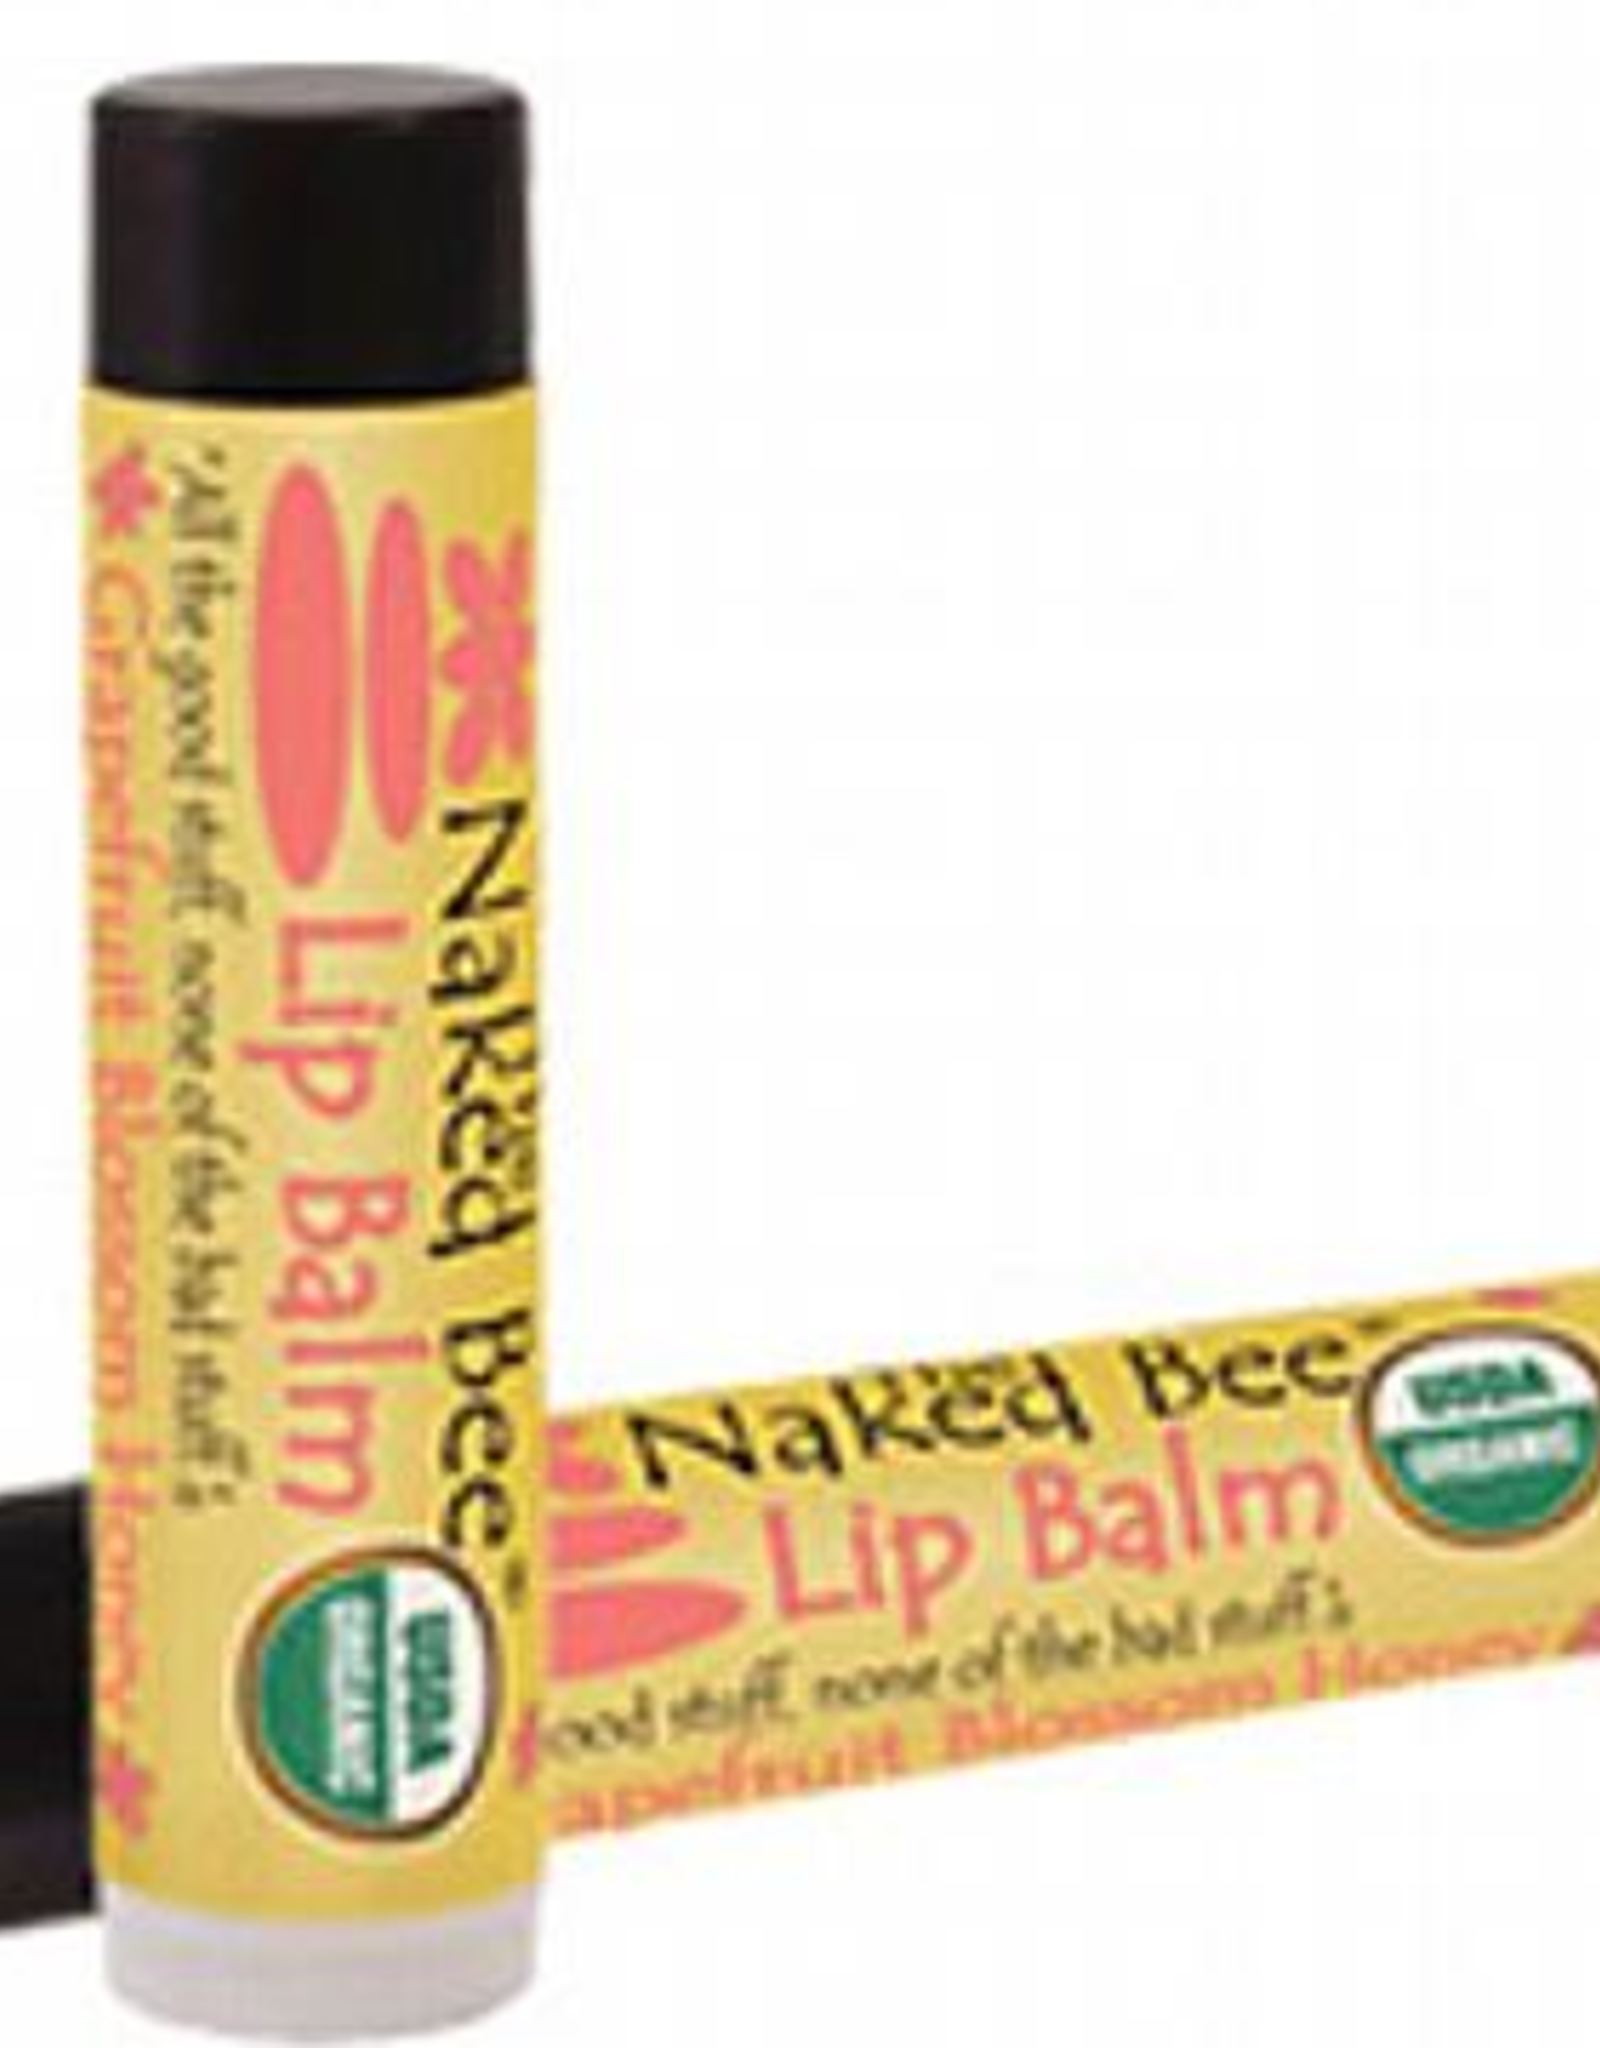 NAKED BEE The Naked Bee Lip Balm